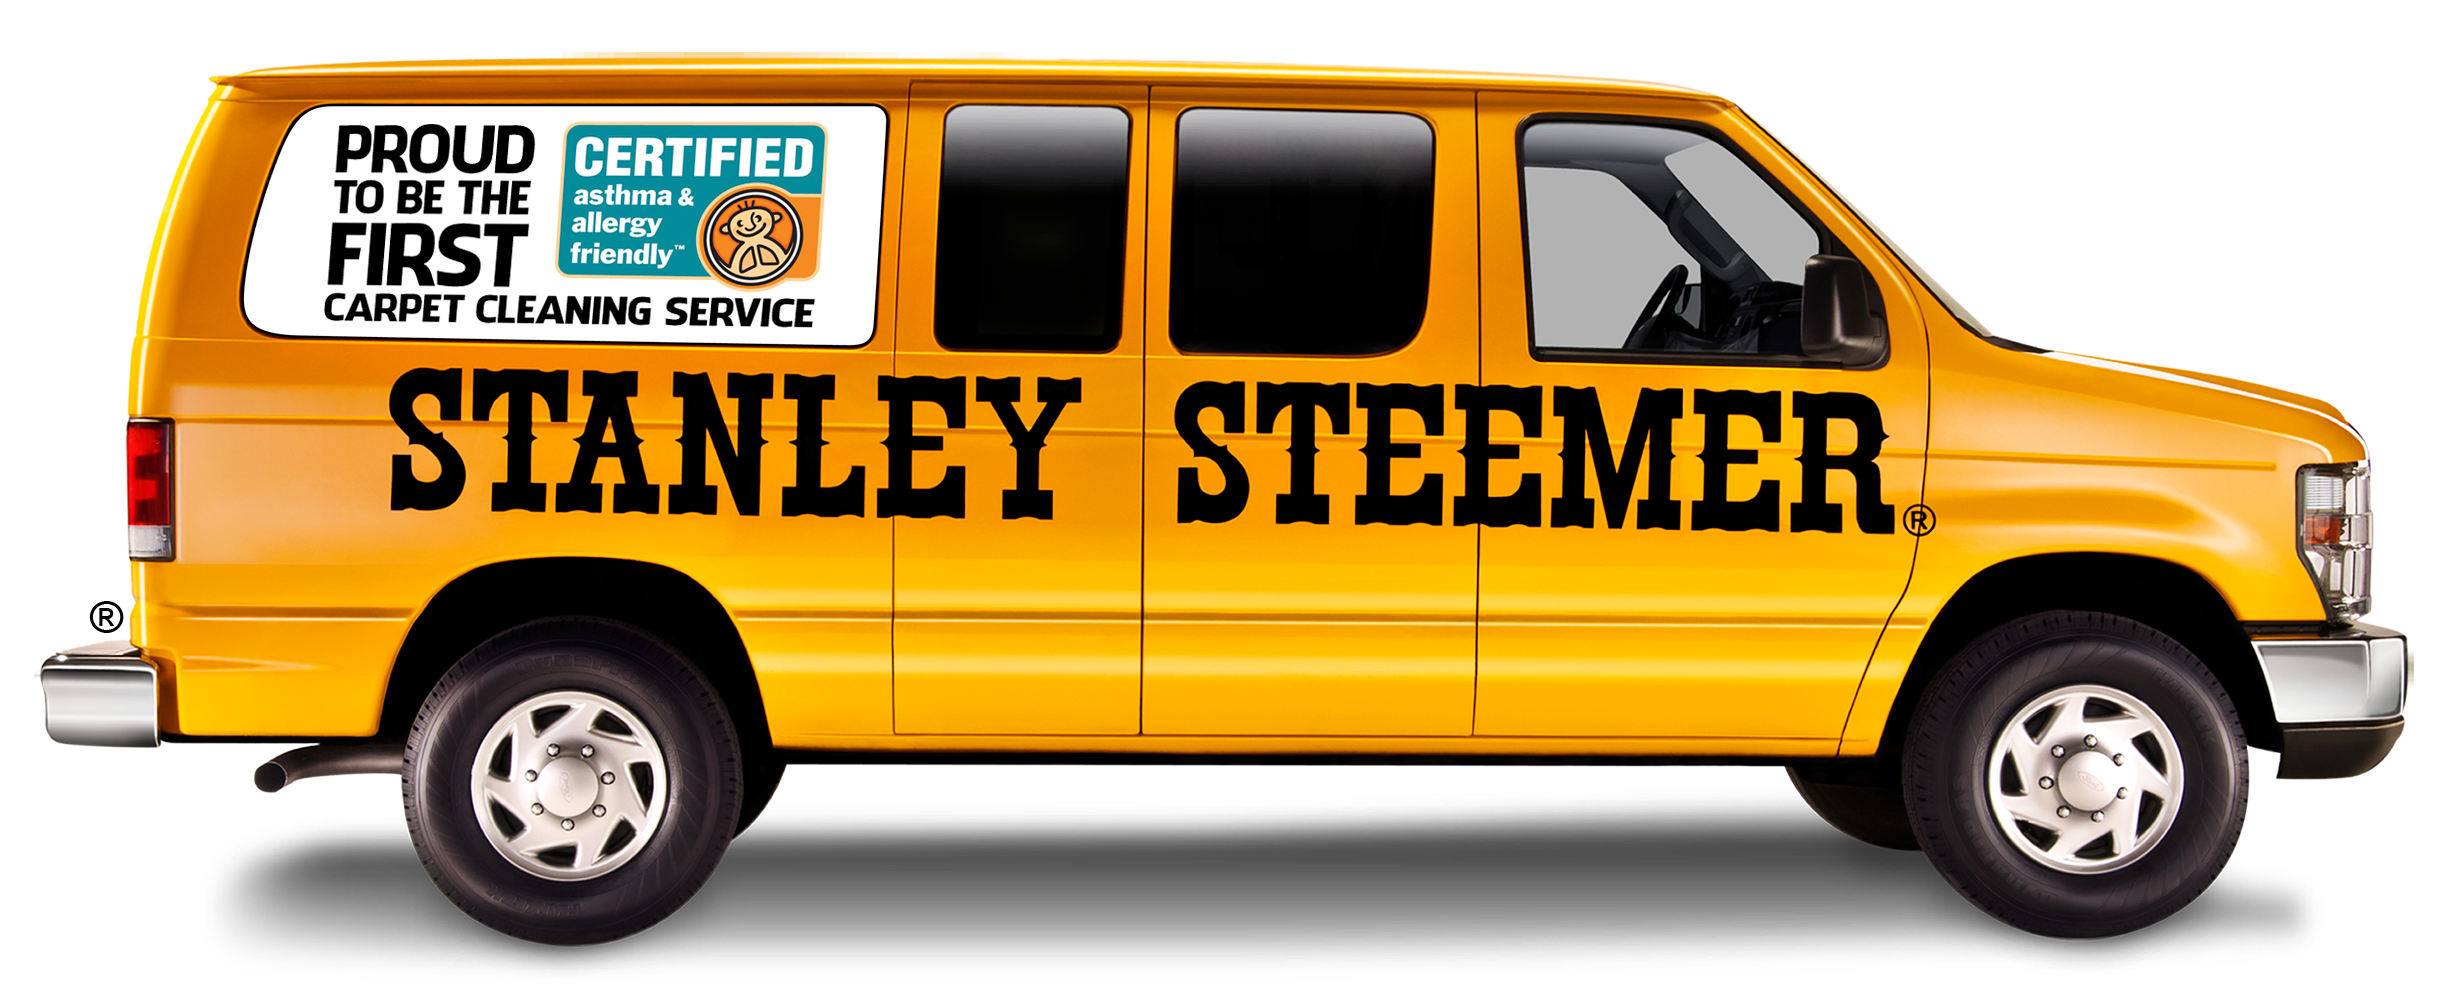 Stanley Steemer Coupons Near Me In Lakeland 8coupons